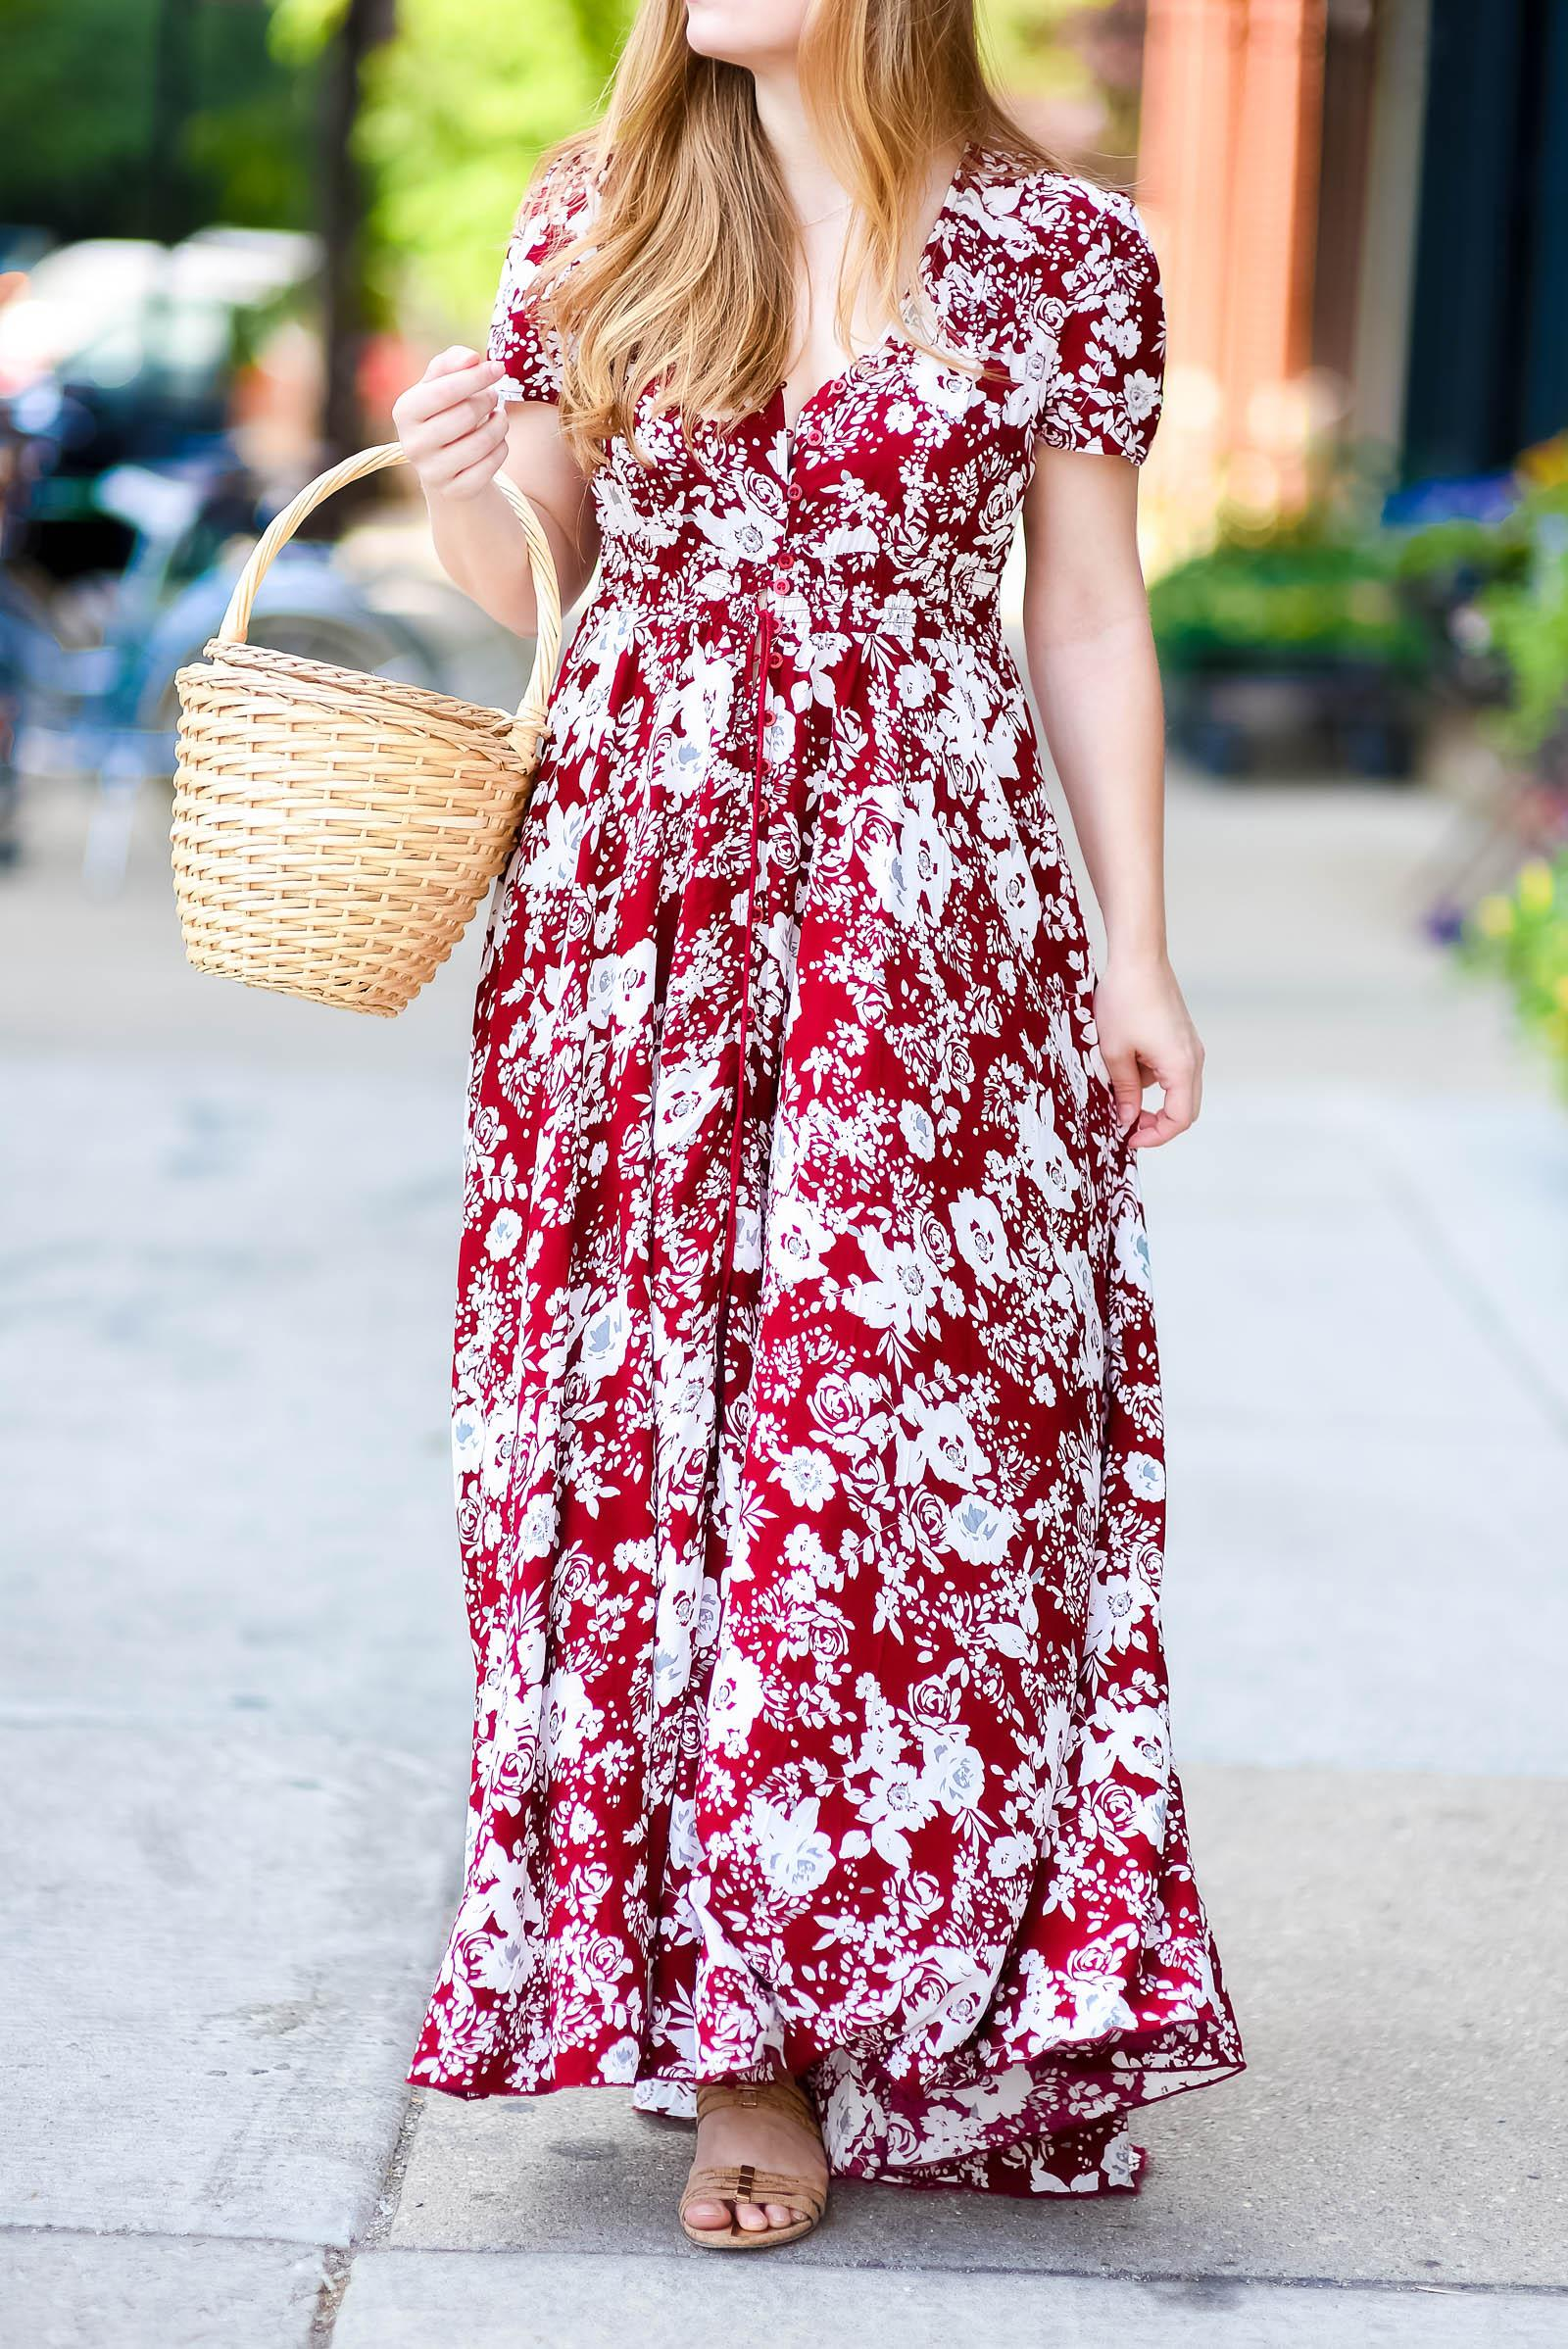 Burgundy Floral Maxi Dress Basket Bag Style